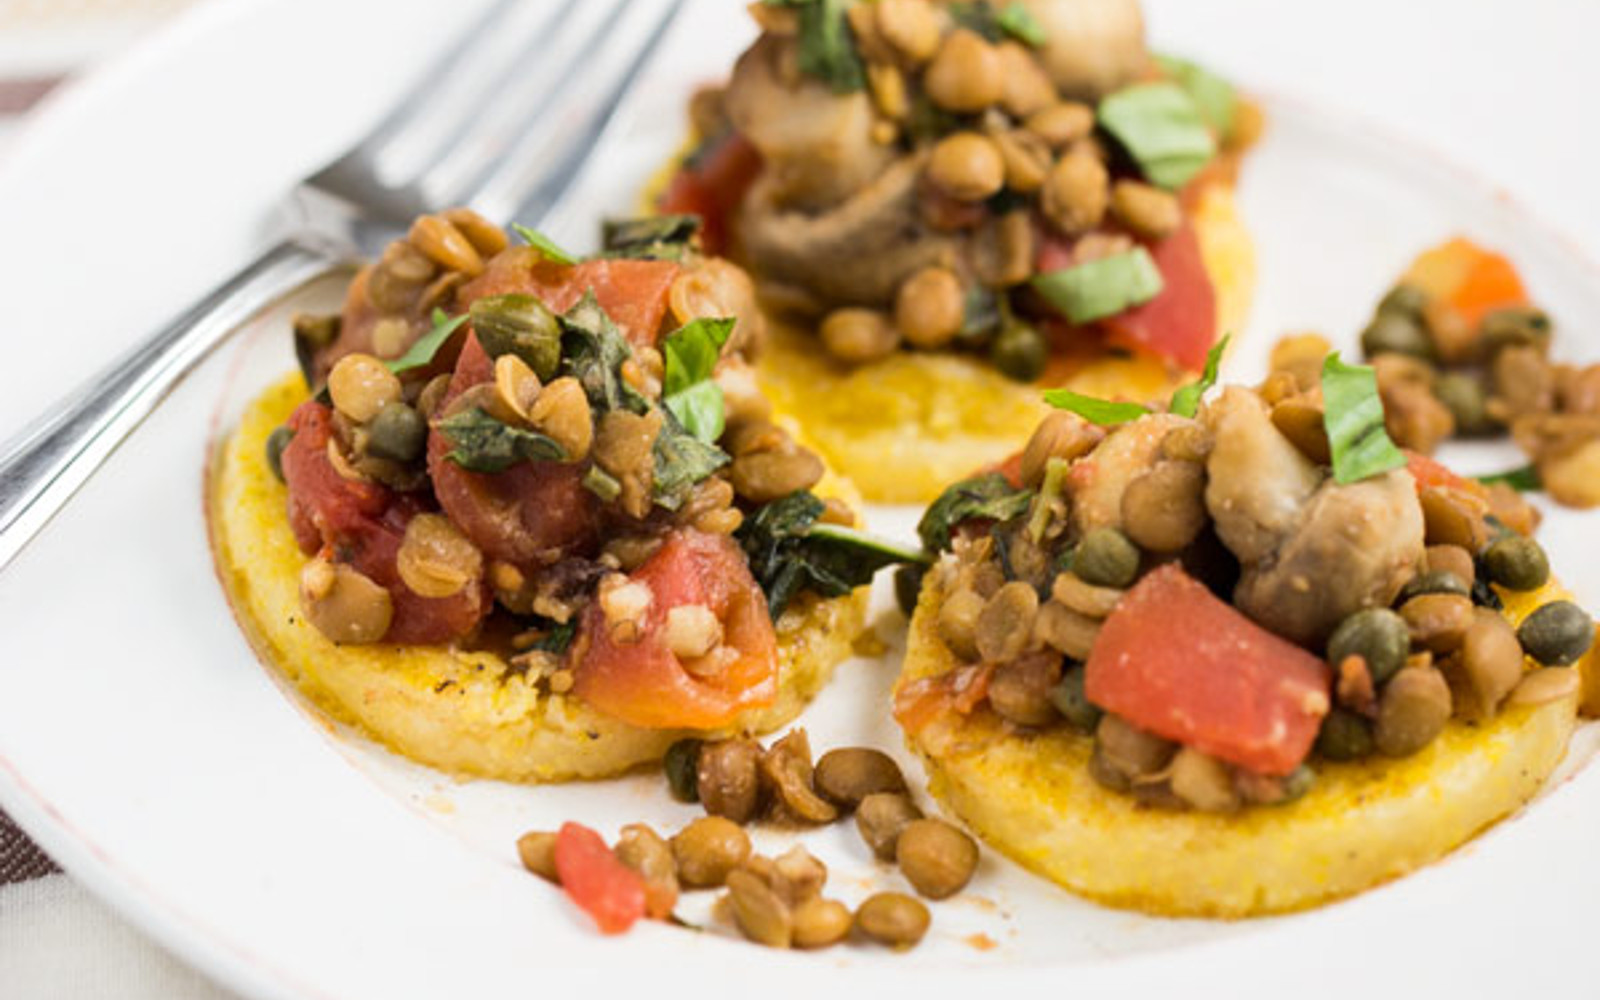 Polenta Cakes with Lentils and Veggies